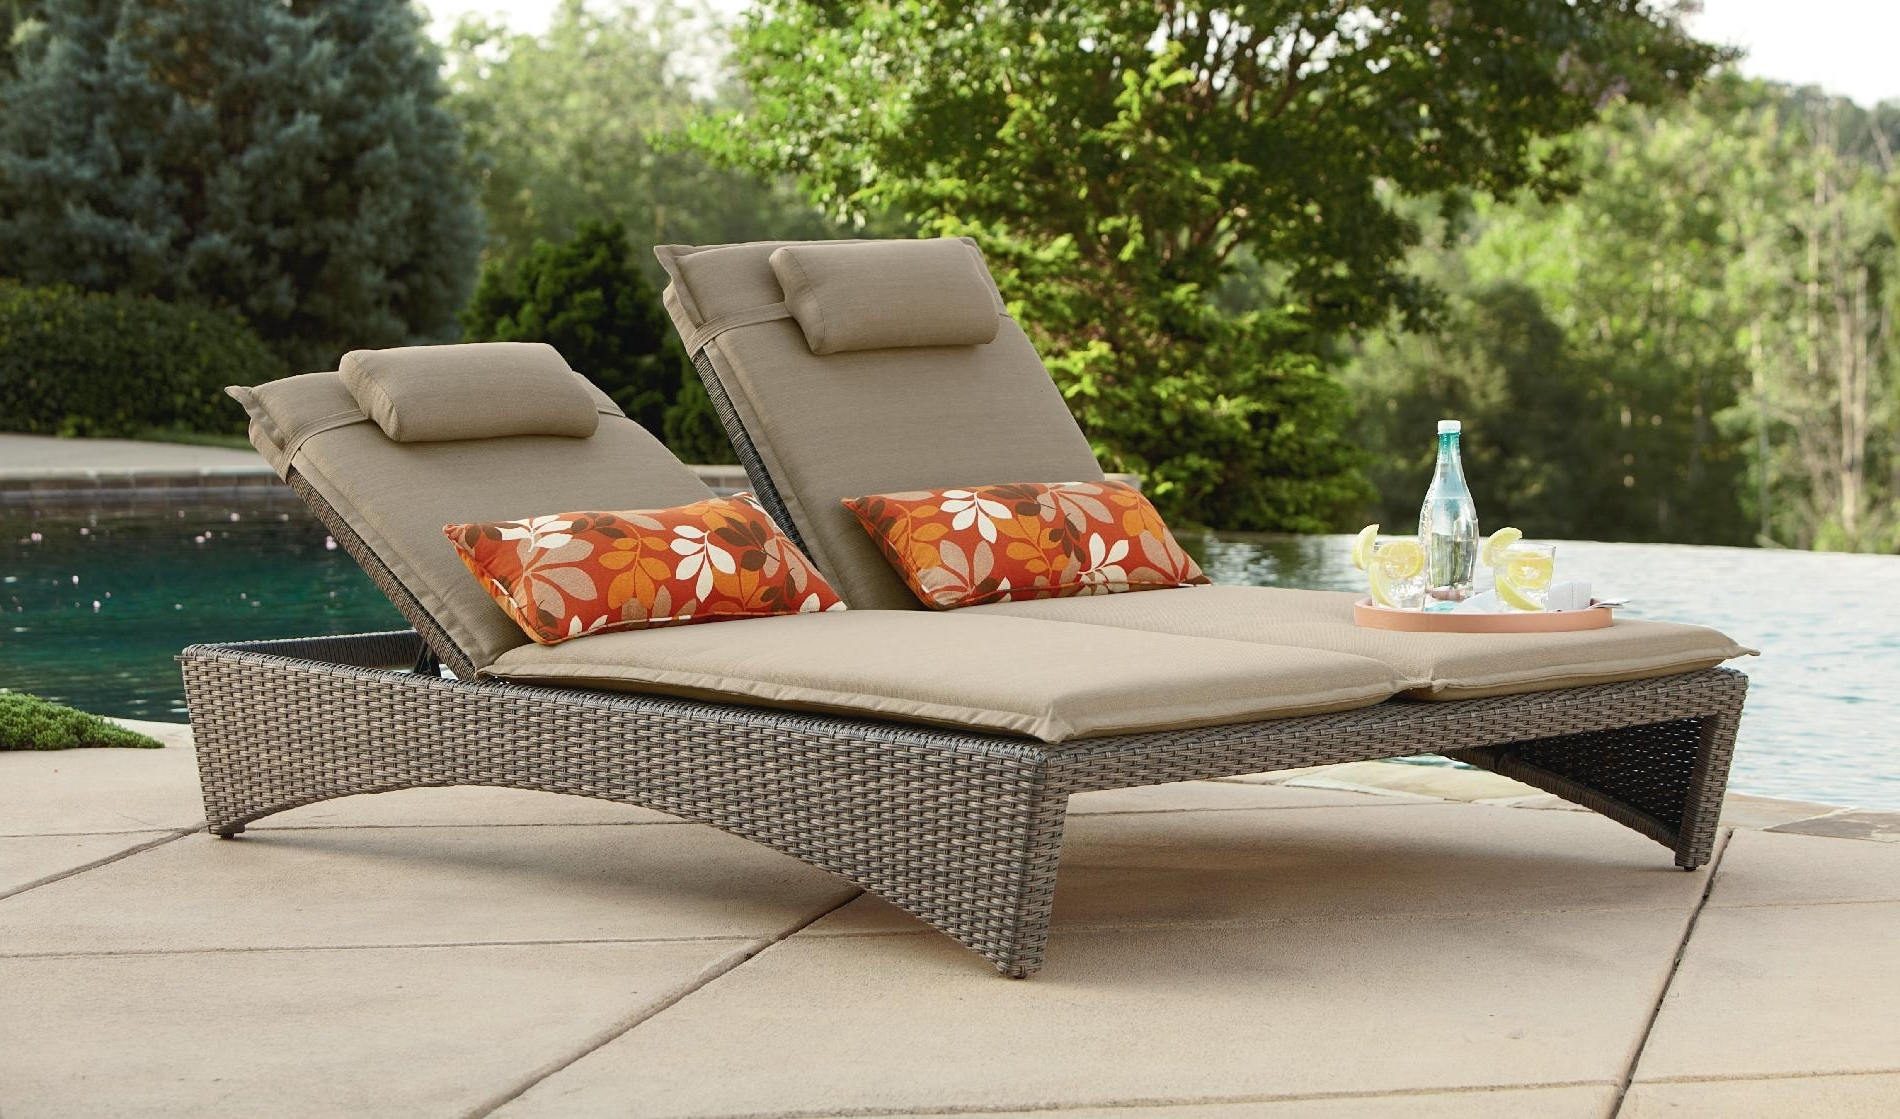 Patio Double Chaise Lounges Intended For Favorite Picture 3 Of 35 – Walmart Patio Lounge Chairs Luxury Patio (View 11 of 15)